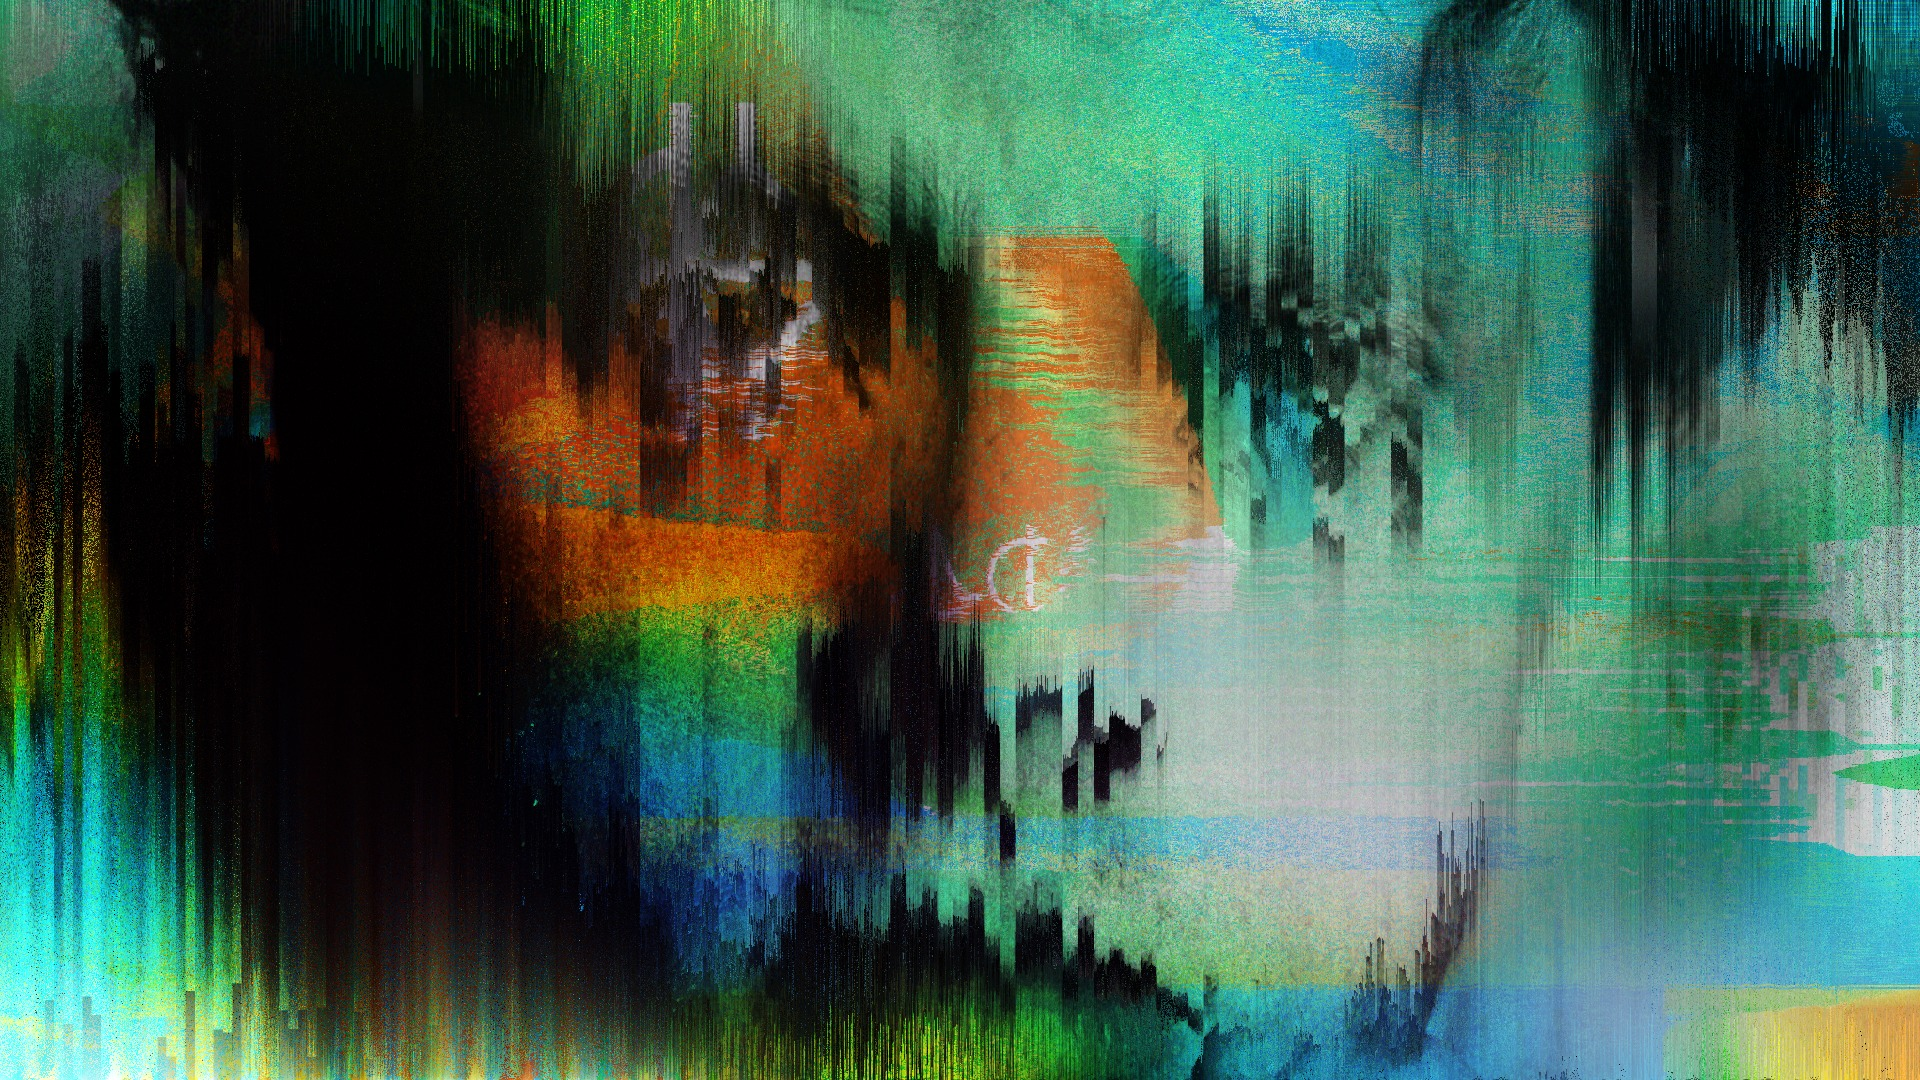 Glitch Art Humans - Styleframes and Live Visuals